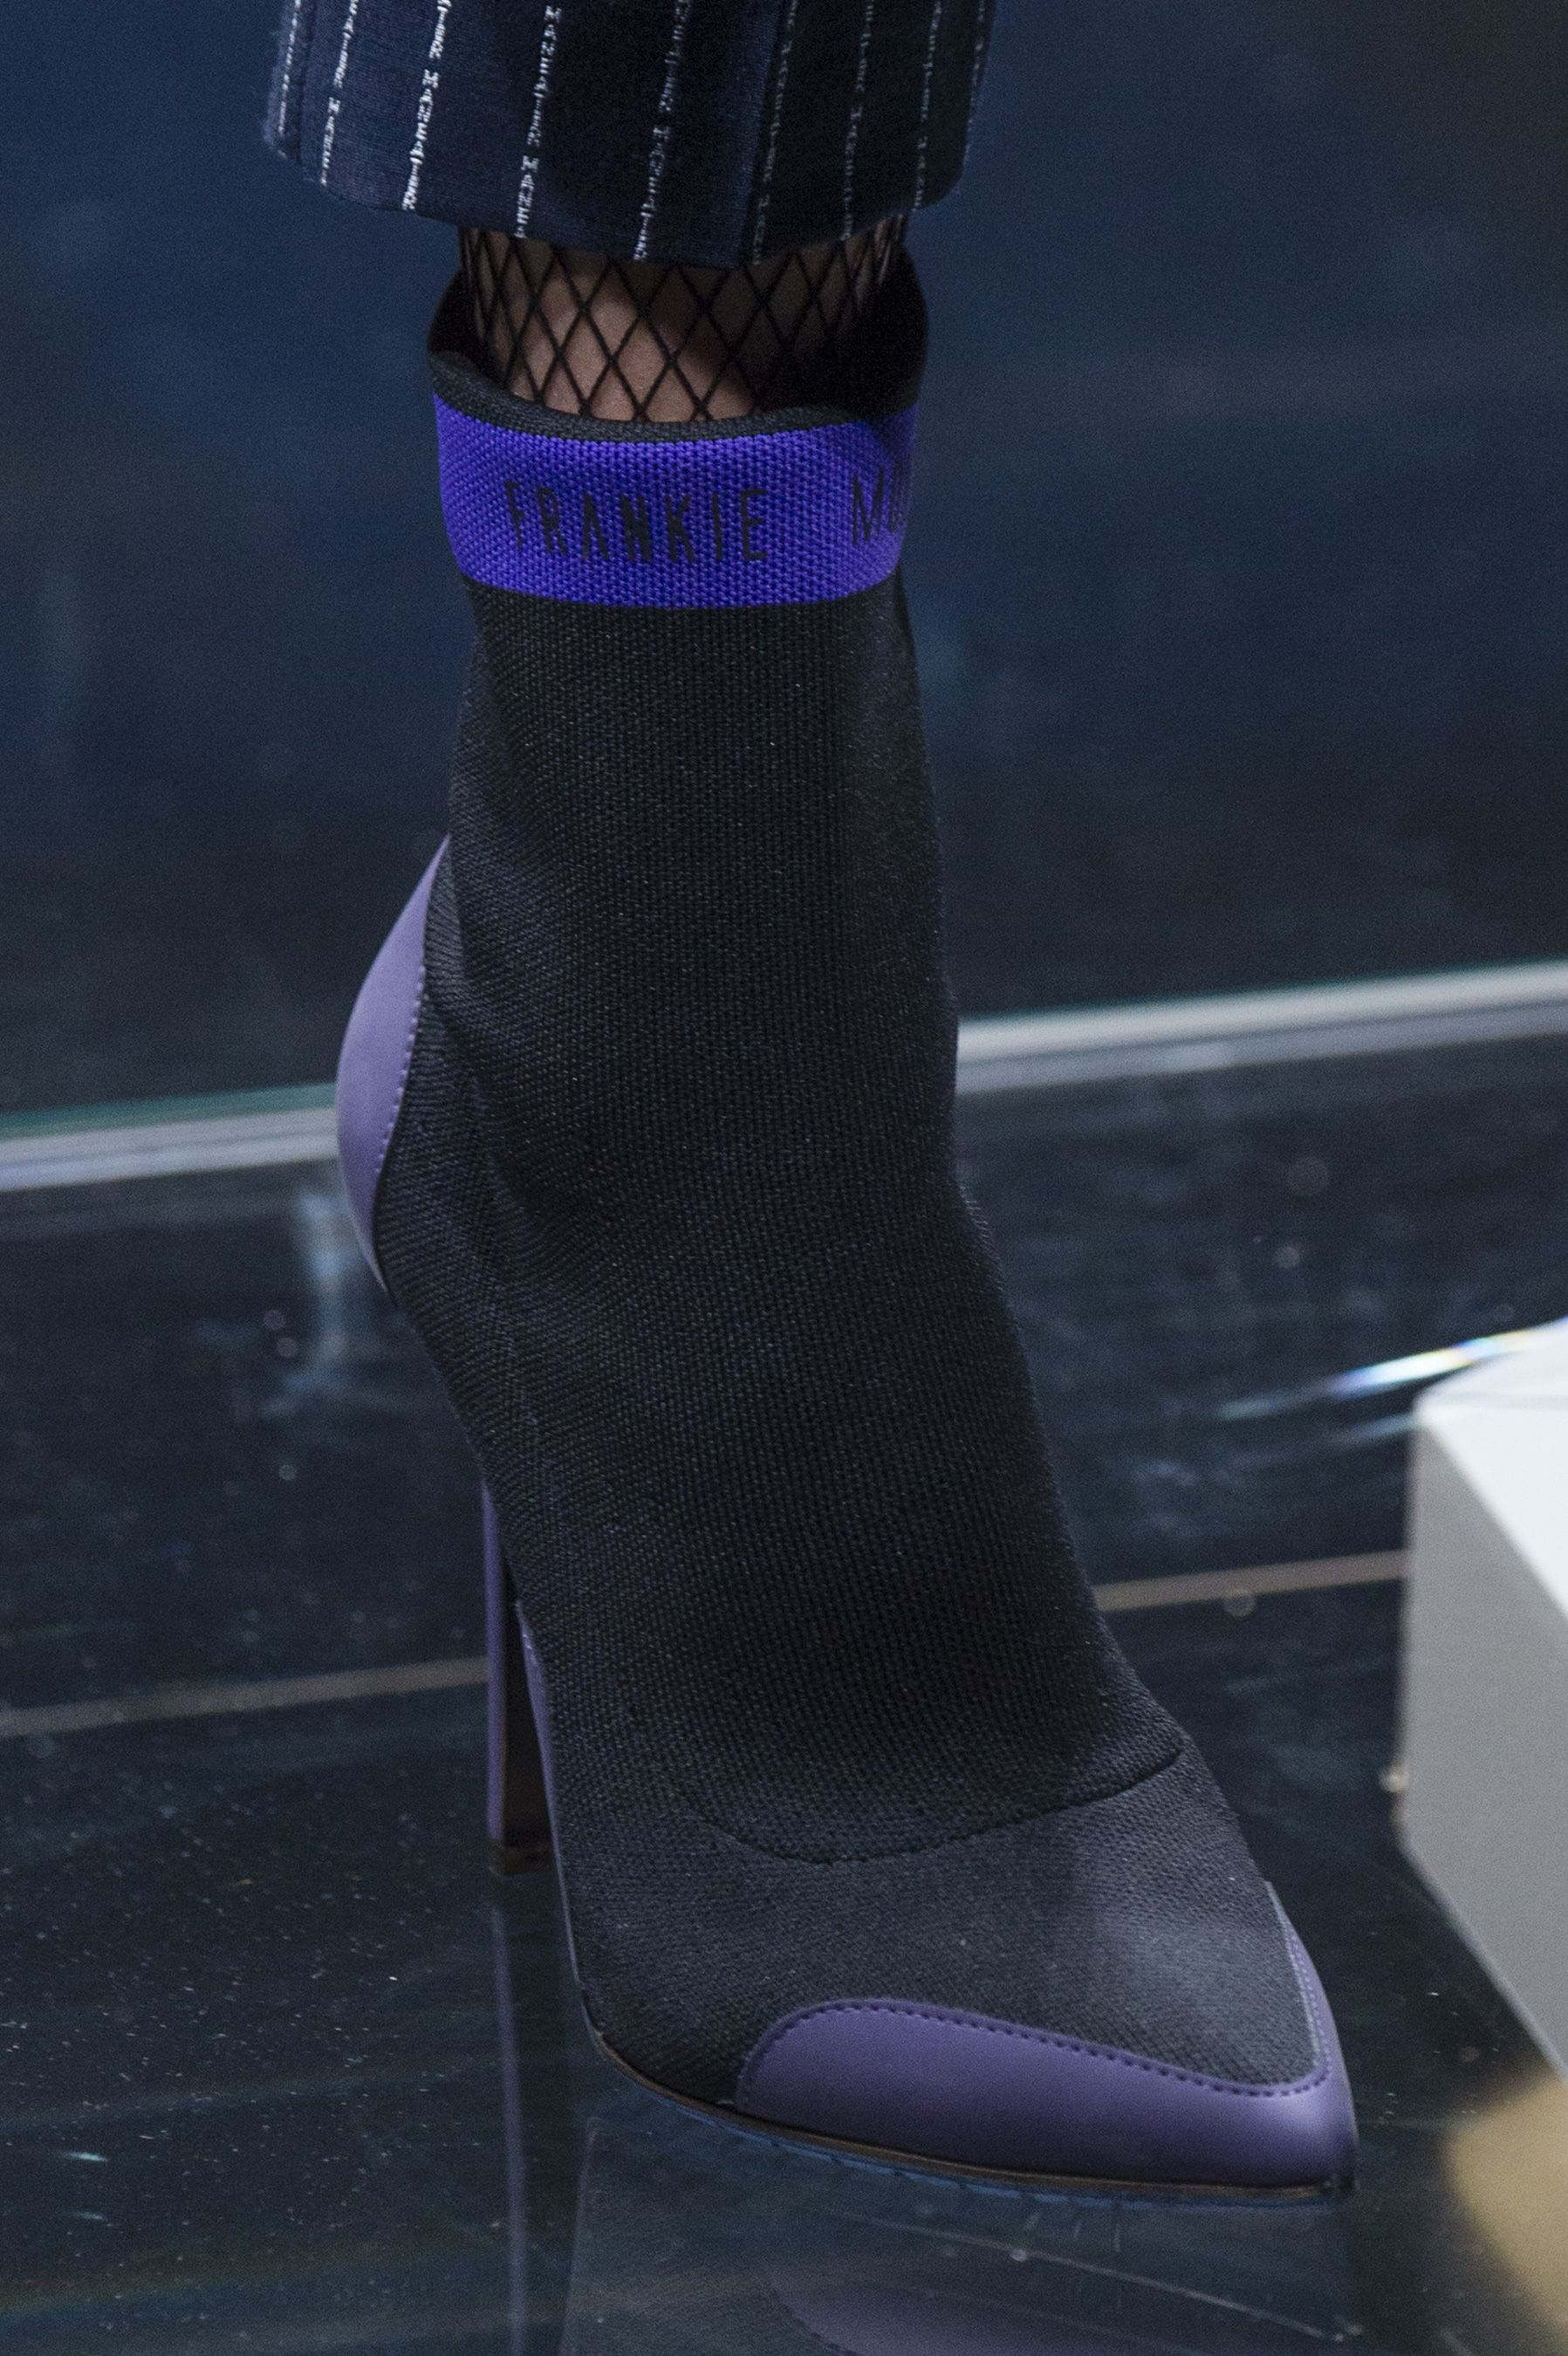 58f3ef3f9a2ff Frankie Morello Fall 2018 Men's Fashion Show Details - The Impression Shoe  Boots, Shoe Bag